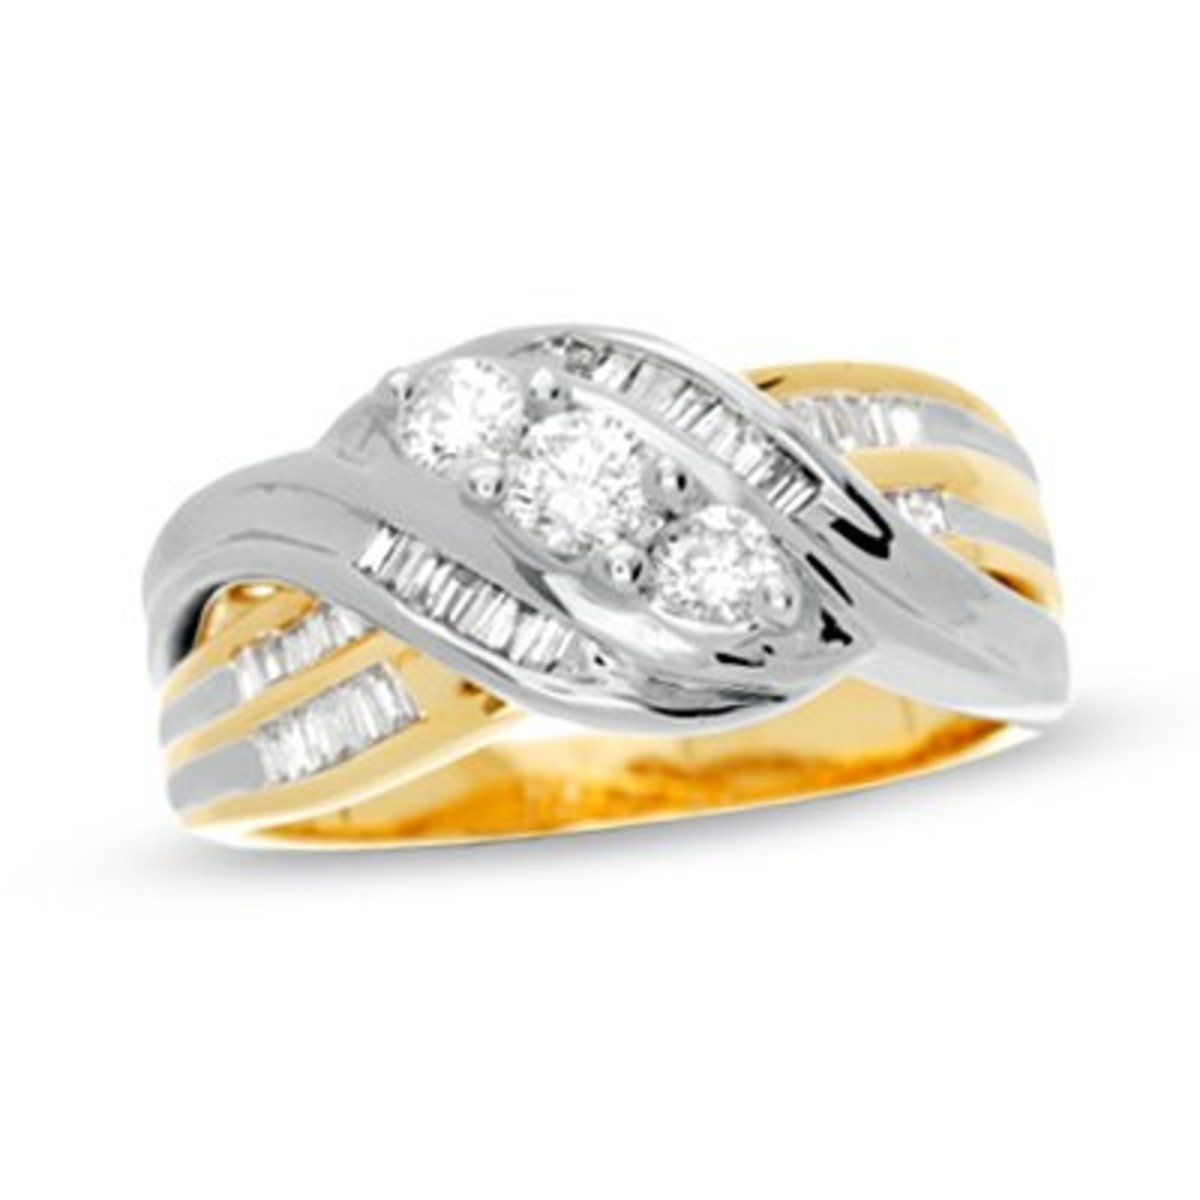 Is this the engagement ring of your dreams? No???